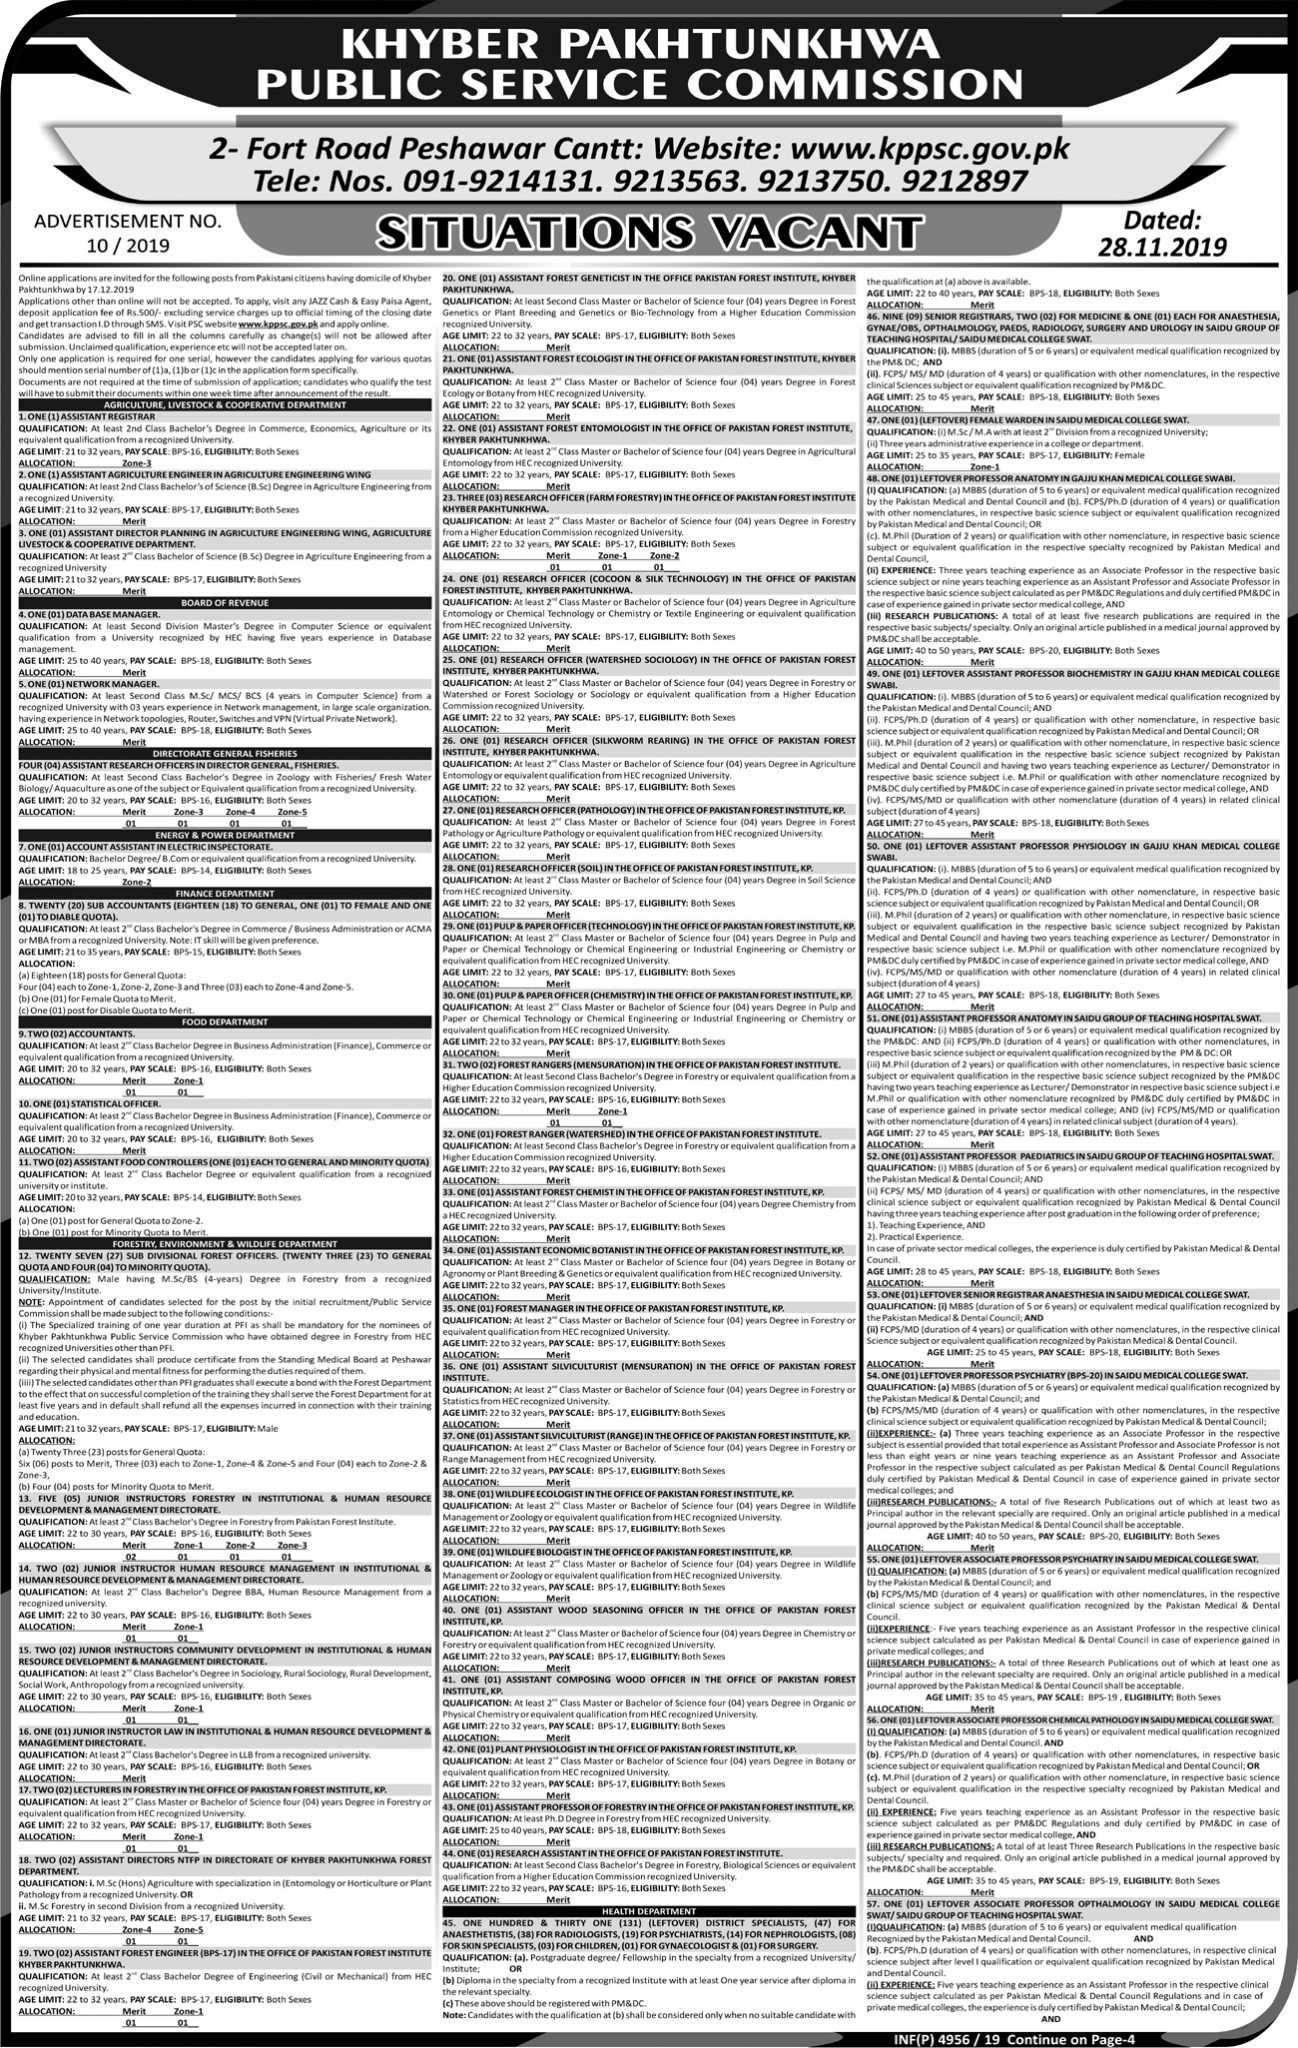 KPK Public Service Commission KPPSC Jobs Test Roll No Slip